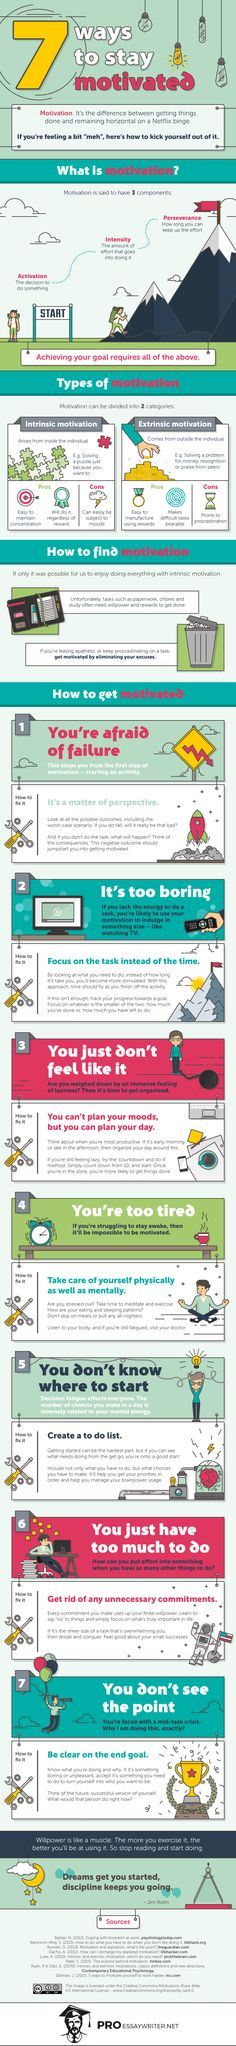 7 Reasons You Can't Get Motivated (Infographic) - The Muse: Getting things done when you're lacking motivat...